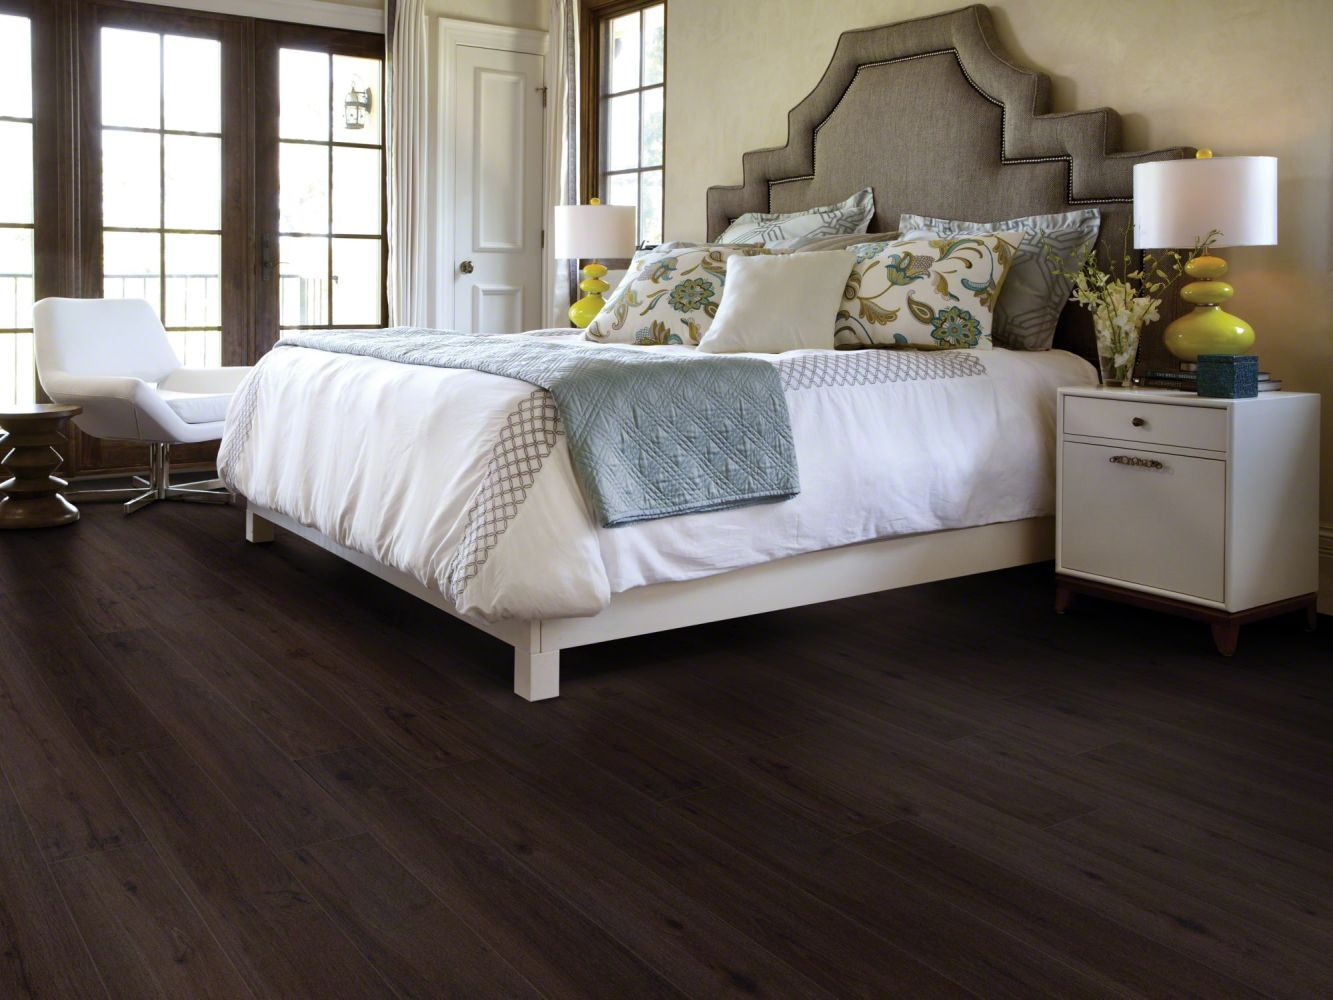 Shaw Floors Vinyl Residential World's Fair 6mil Barcelona 00791_0318V